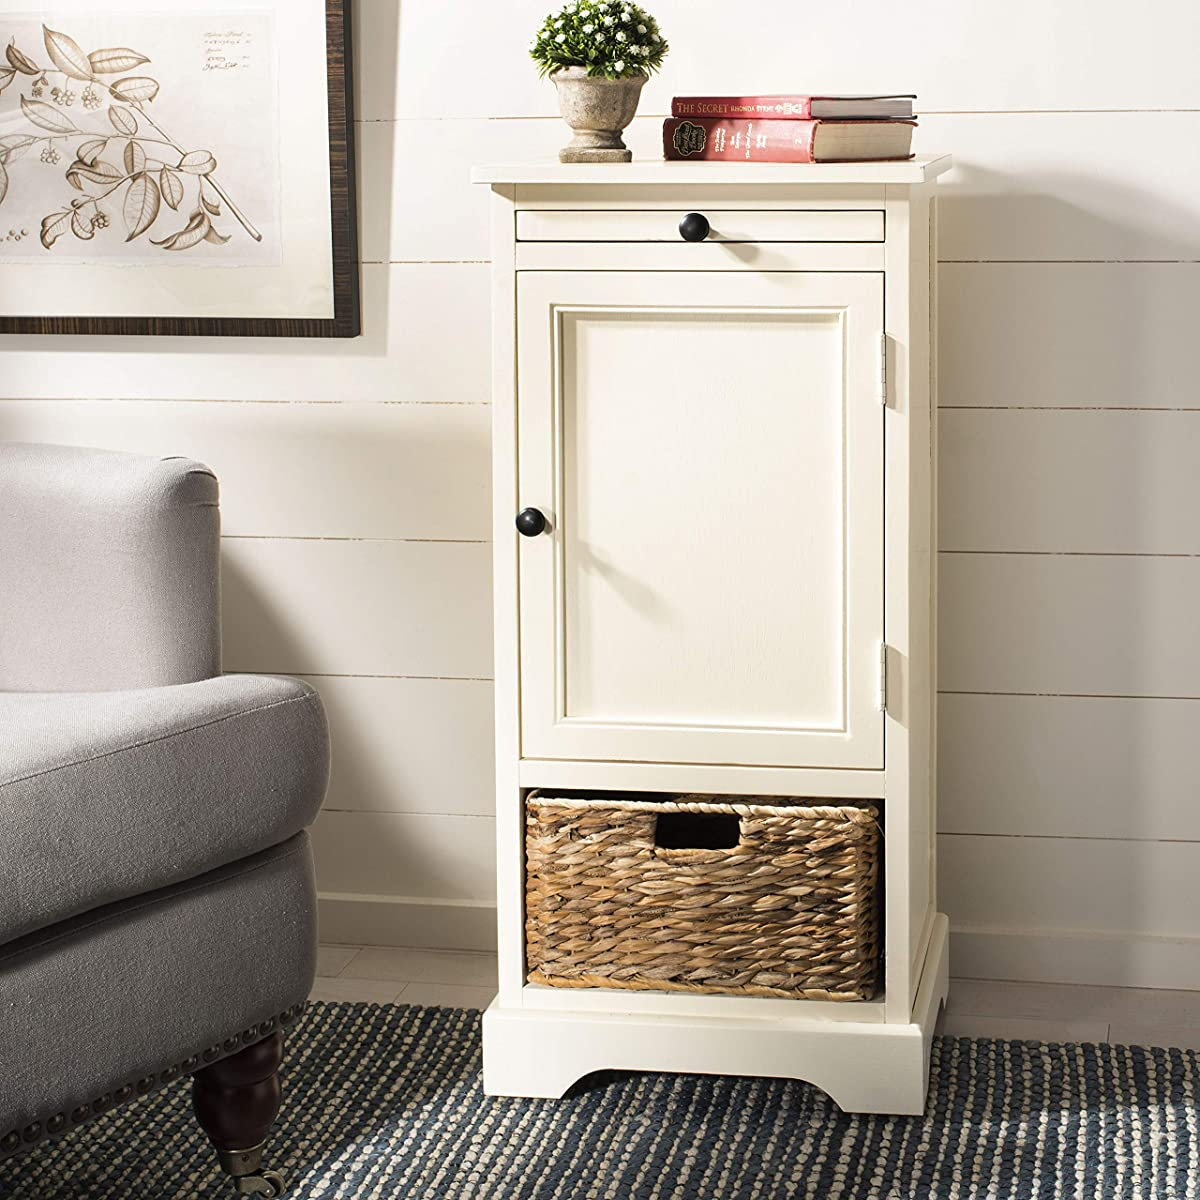 Safavieh American Homes Collection Raven Distressed Cream Tall Storage Unit